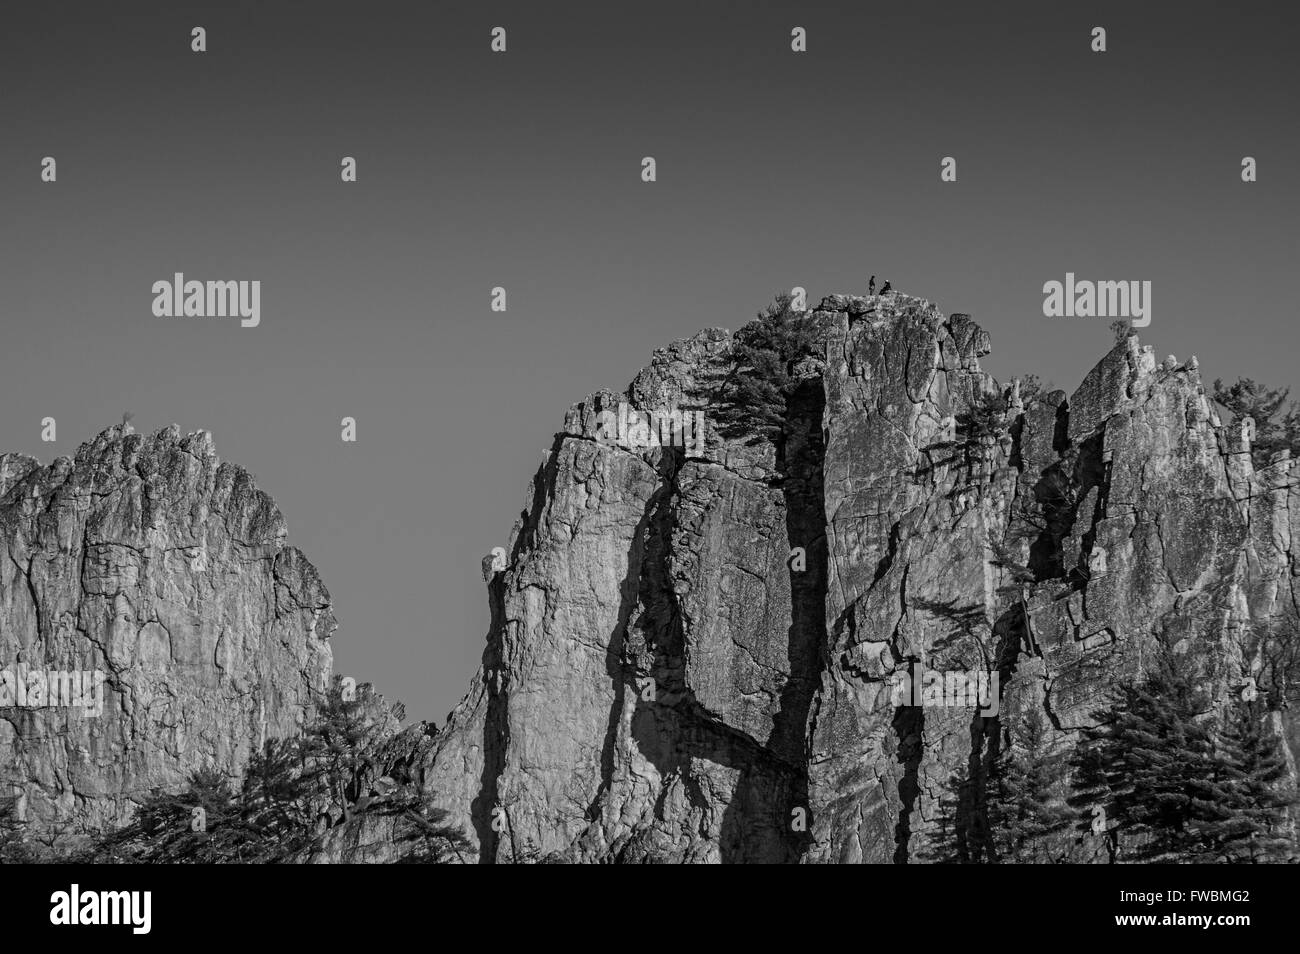 Rock climbers taking a break on top of one of the crags of Seneca Rocks in West Virginia, shown in black and white - Stock Image